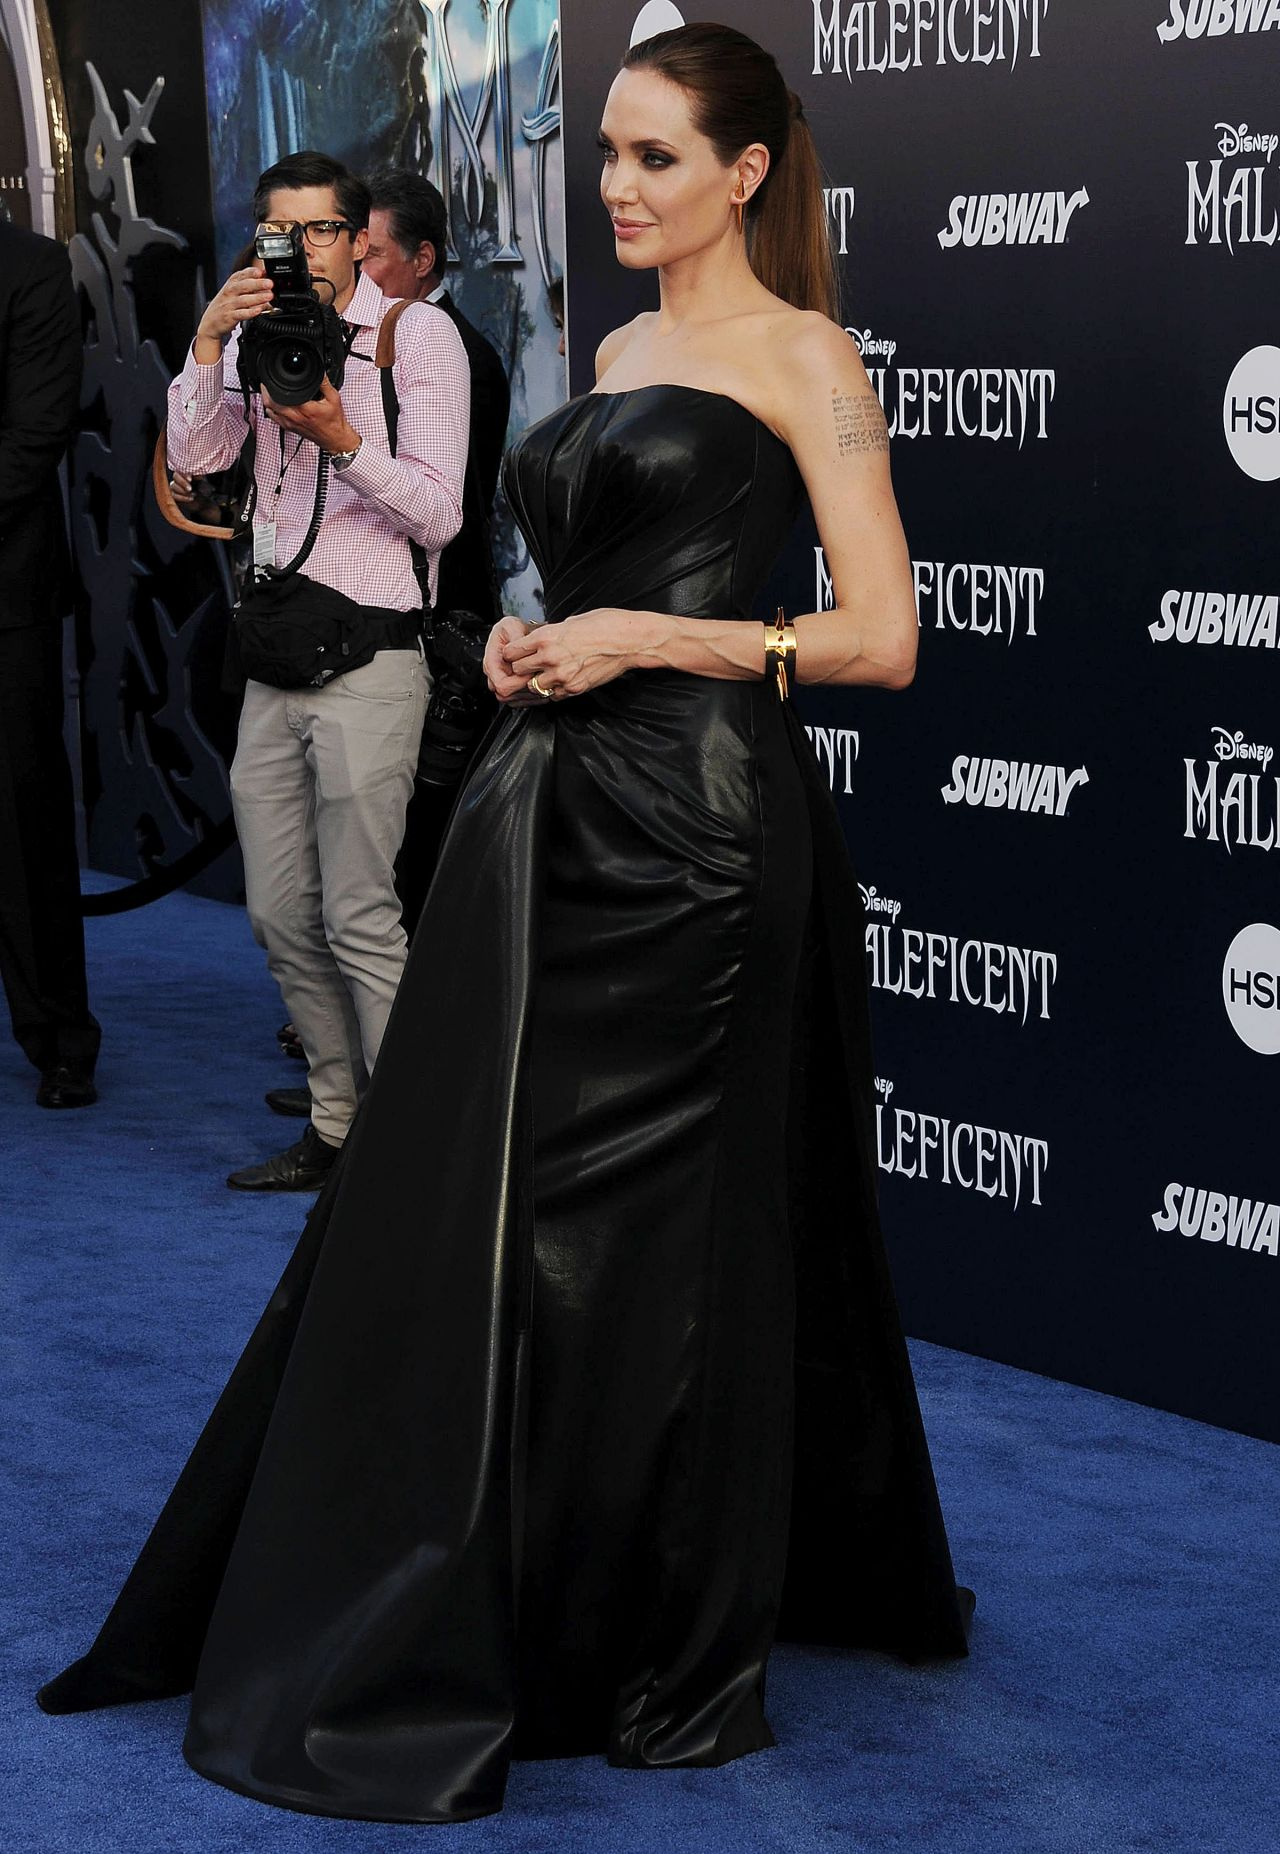 Maleficent World Premiere In Hollywood Angelina Jolie